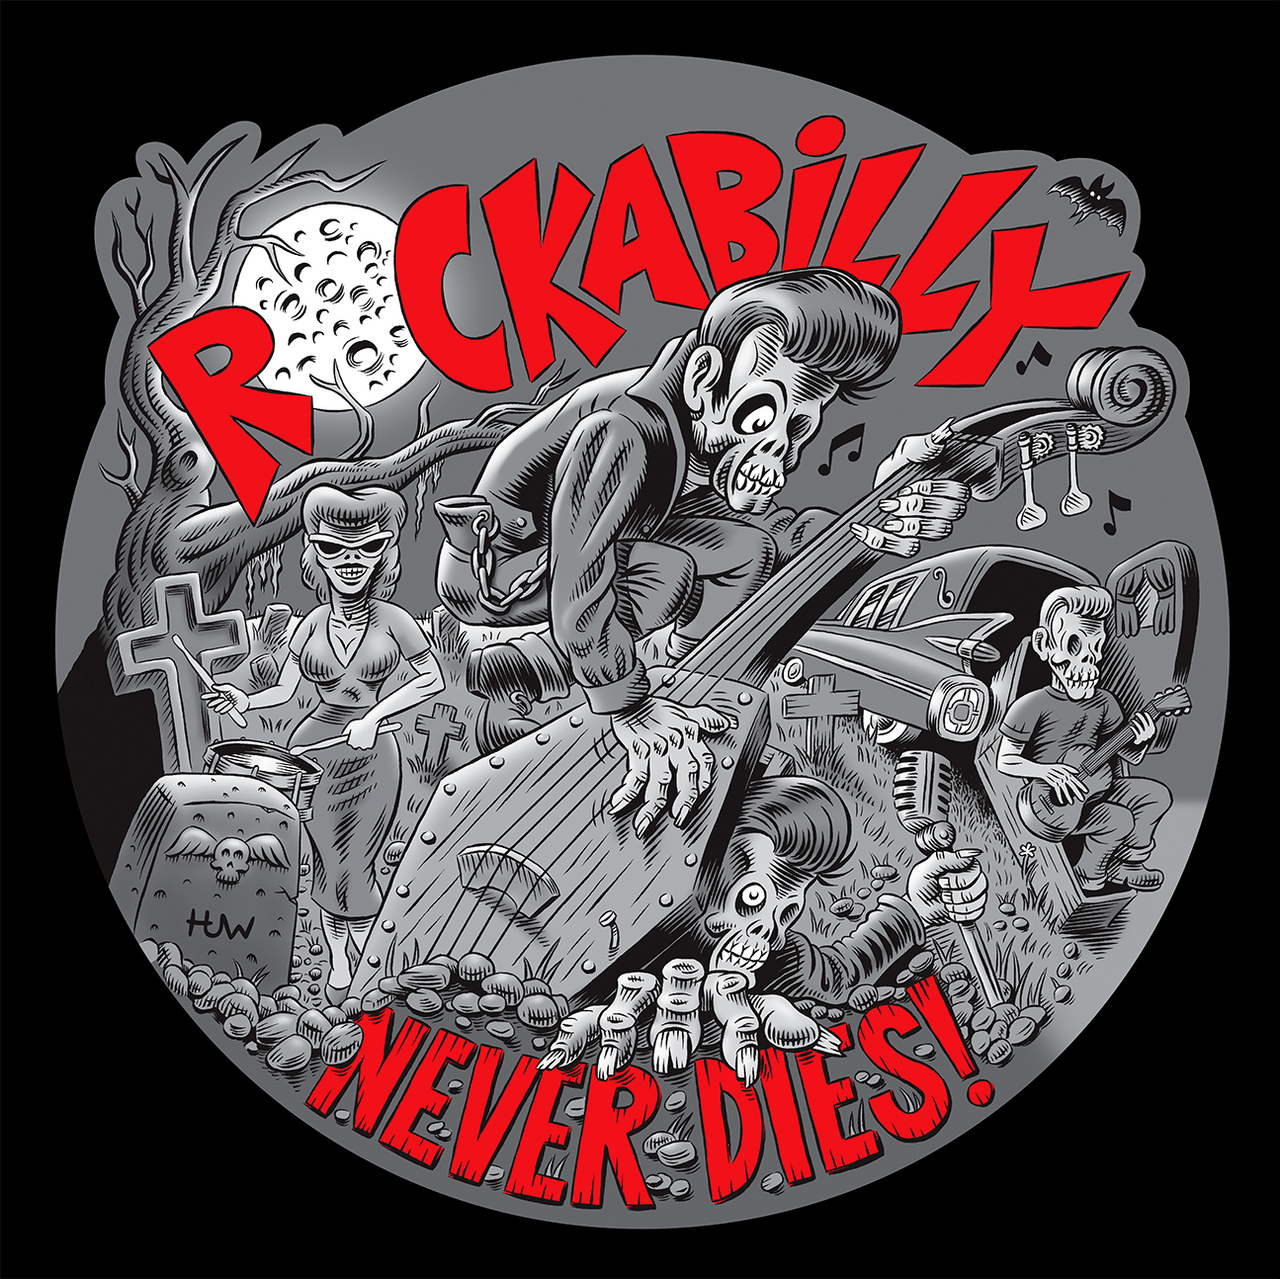 ROCKABILLY NEVER DIES! (BLACK AND RED VERSION)